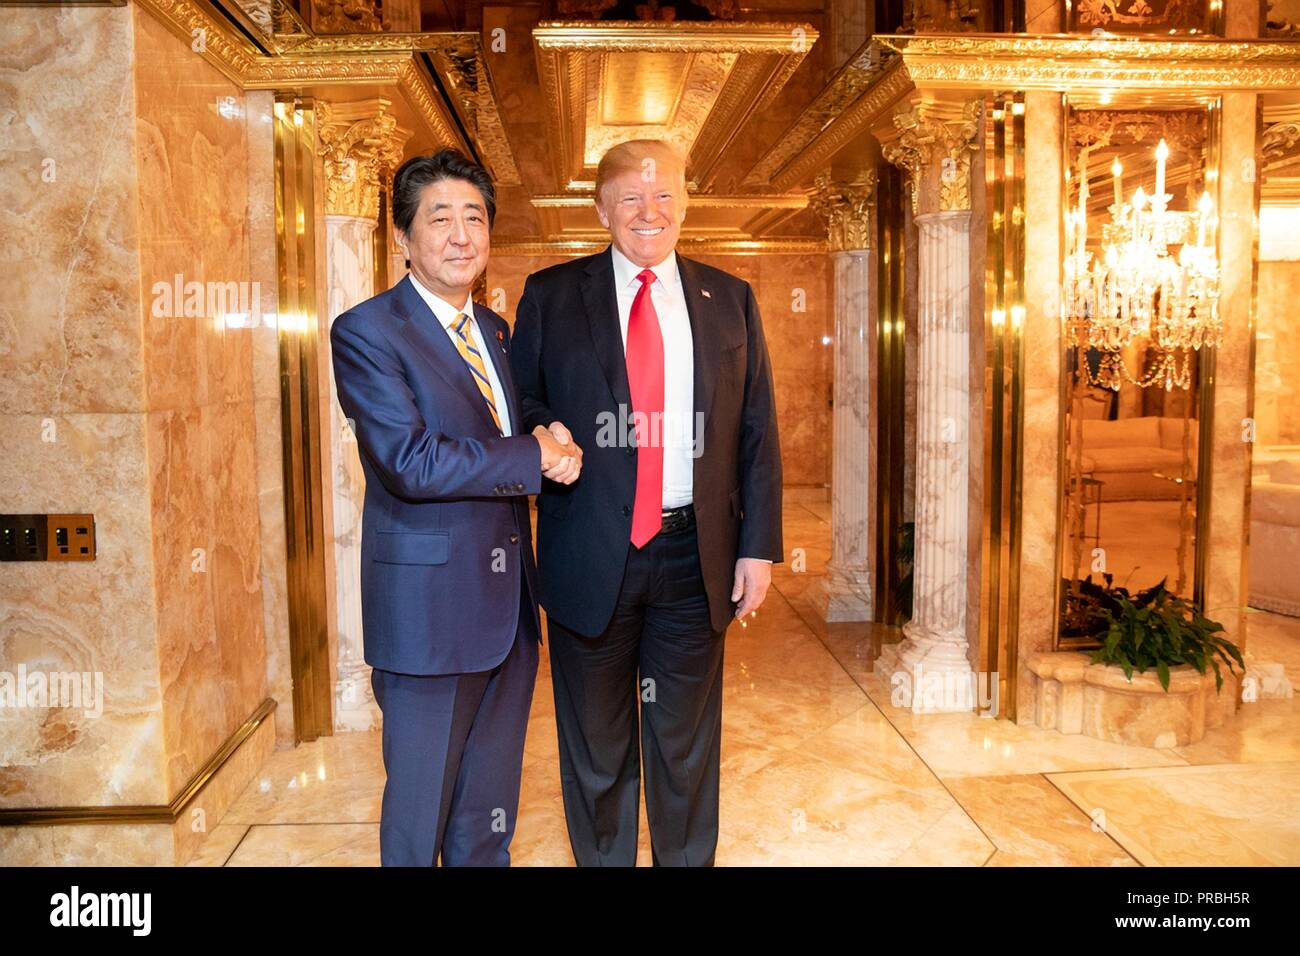 ¿Cuánto mide Shinzo Abe? - Altura - Real height Us-president-donald-trump-poses-with-japanese-prime-minister-shinzo-abe-during-a-working-dinner-at-trumps-personal-residence-in-at-trump-tower-september-23-2018-in-new-york-new-york-PRBH5R